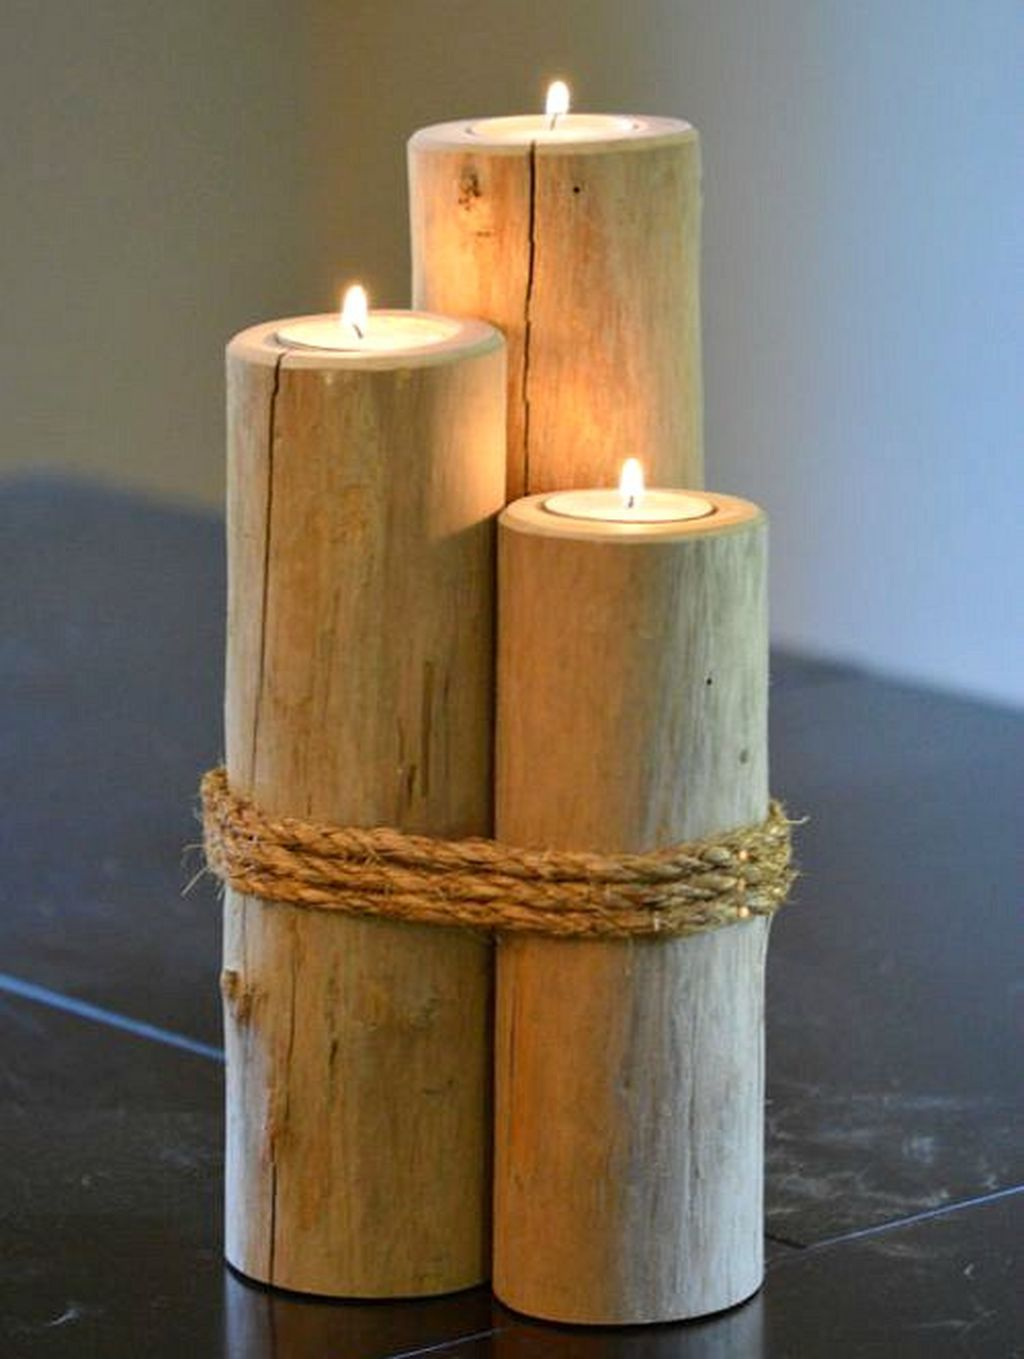 80 Creative Diy Christmas Candle Holders Ideas To Makes Your Room More Cheerful Rustic Candles Diy Rustic Candle Holders Rustic Candle Holders Diy